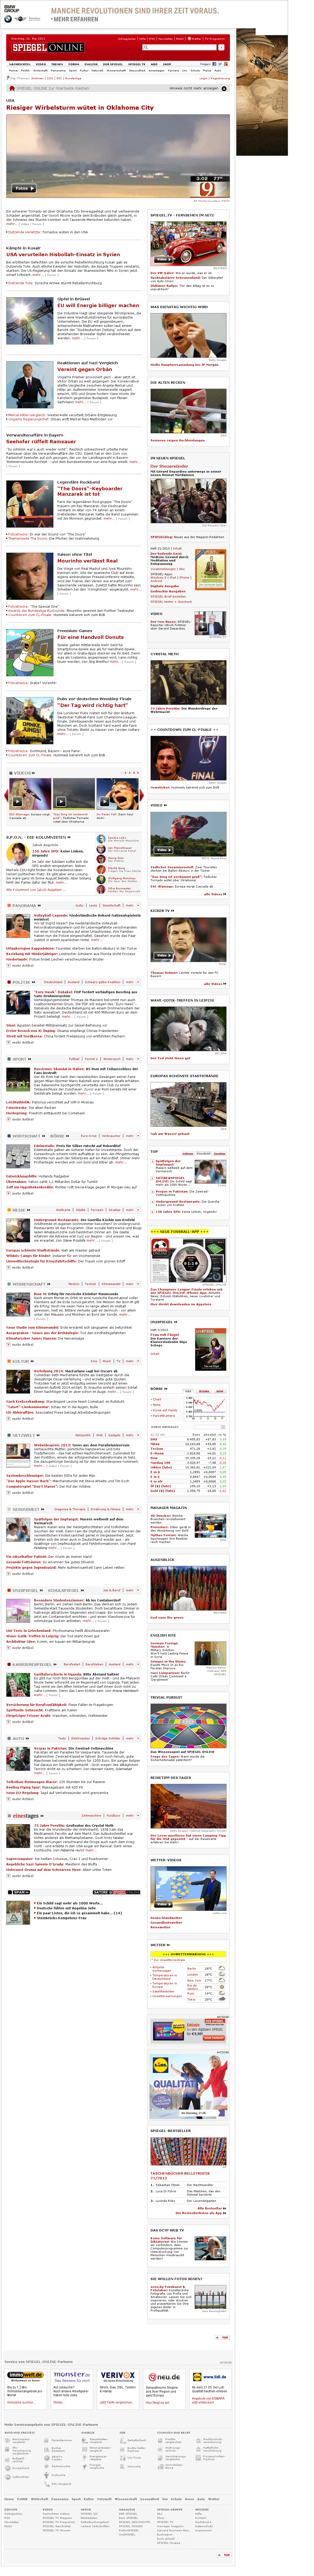 Spiegel Online at Tuesday May 21, 2013, 12:23 a.m. UTC